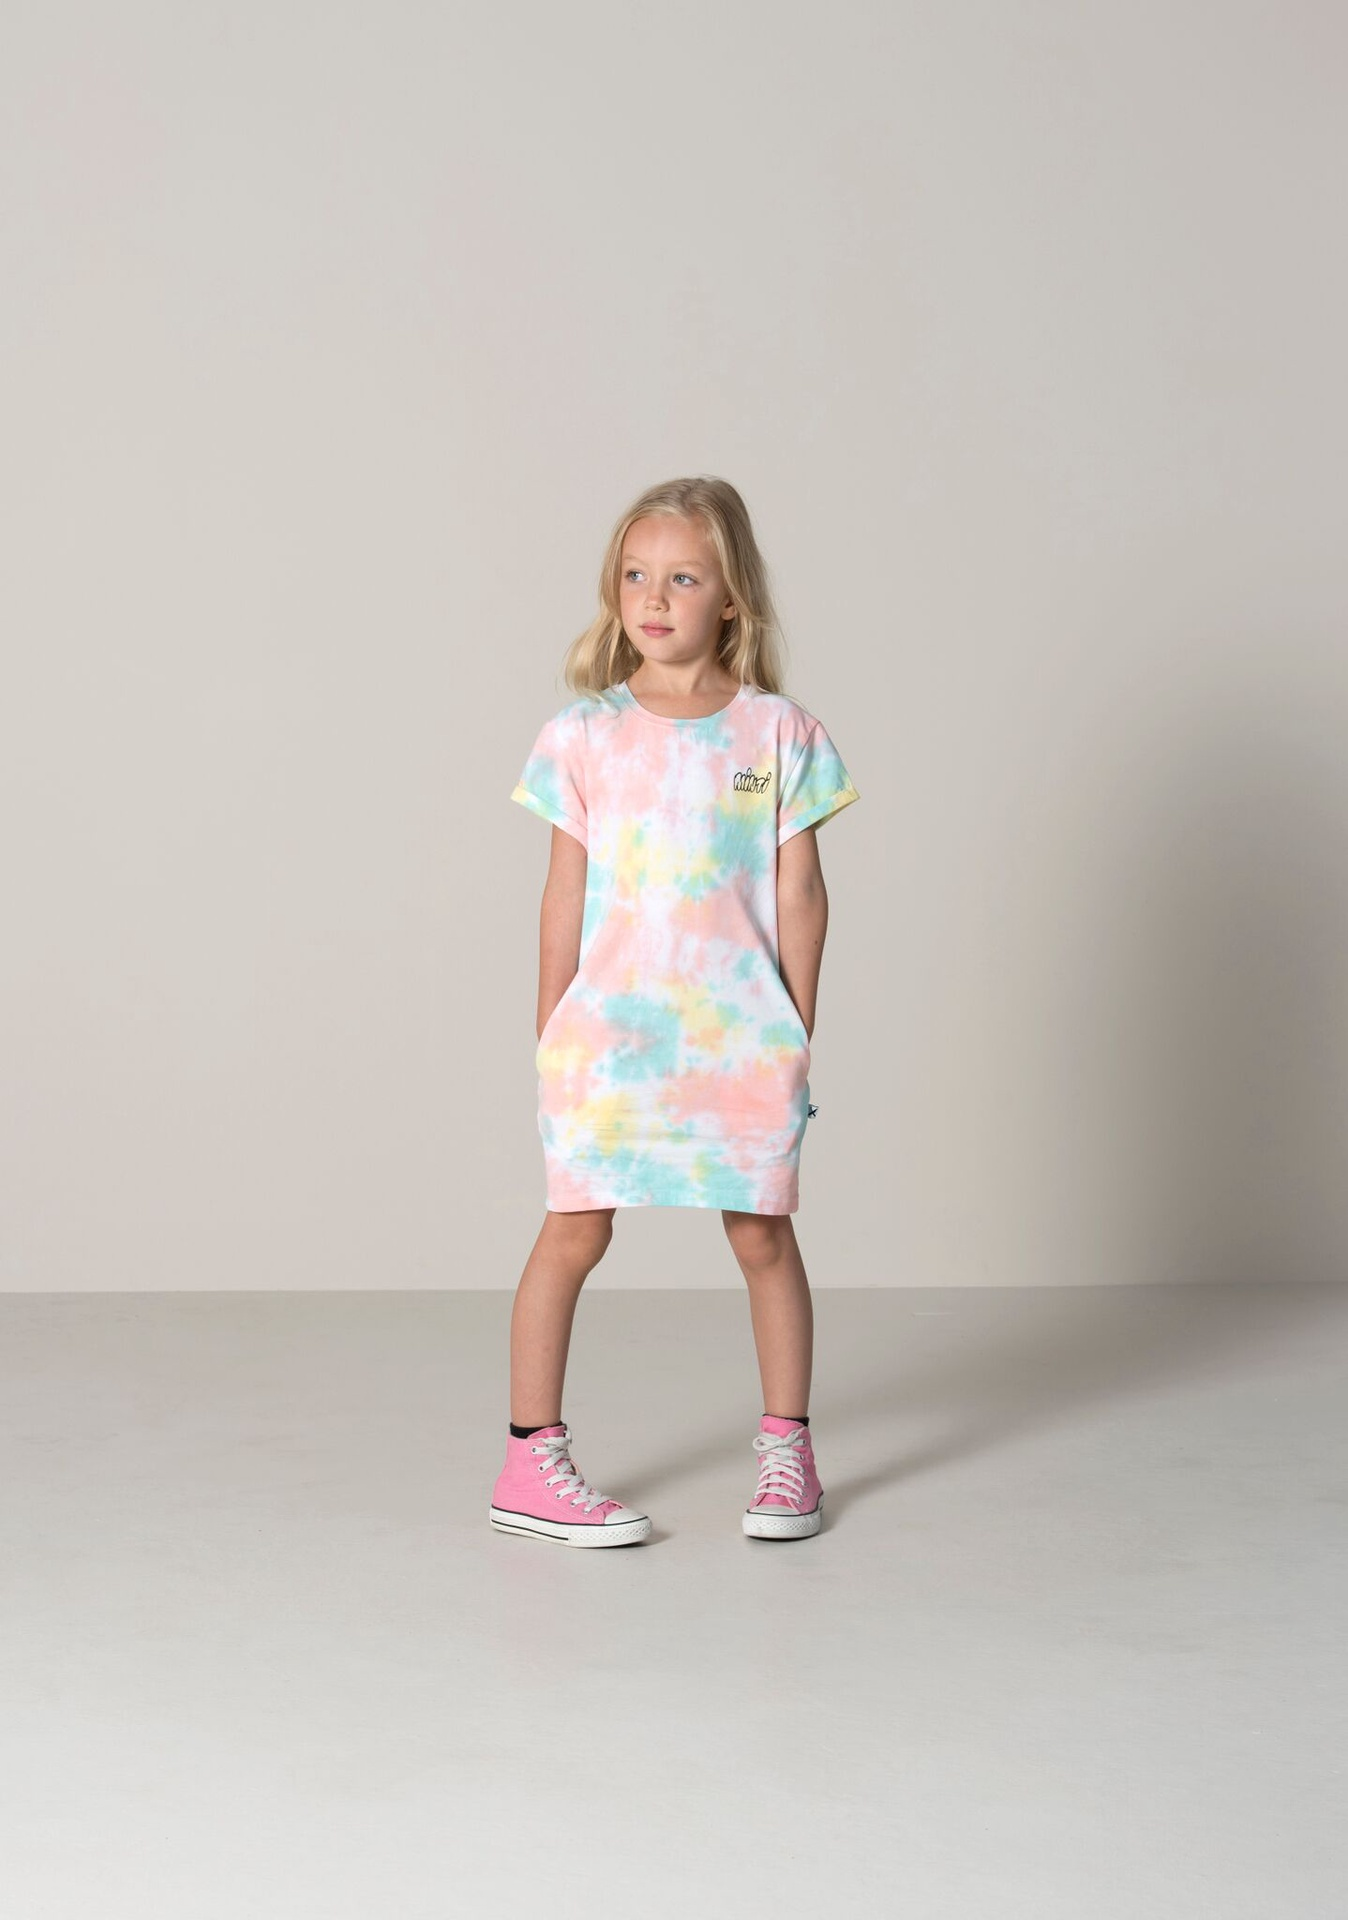 Minti Frosty Rolled Up Tee Dress